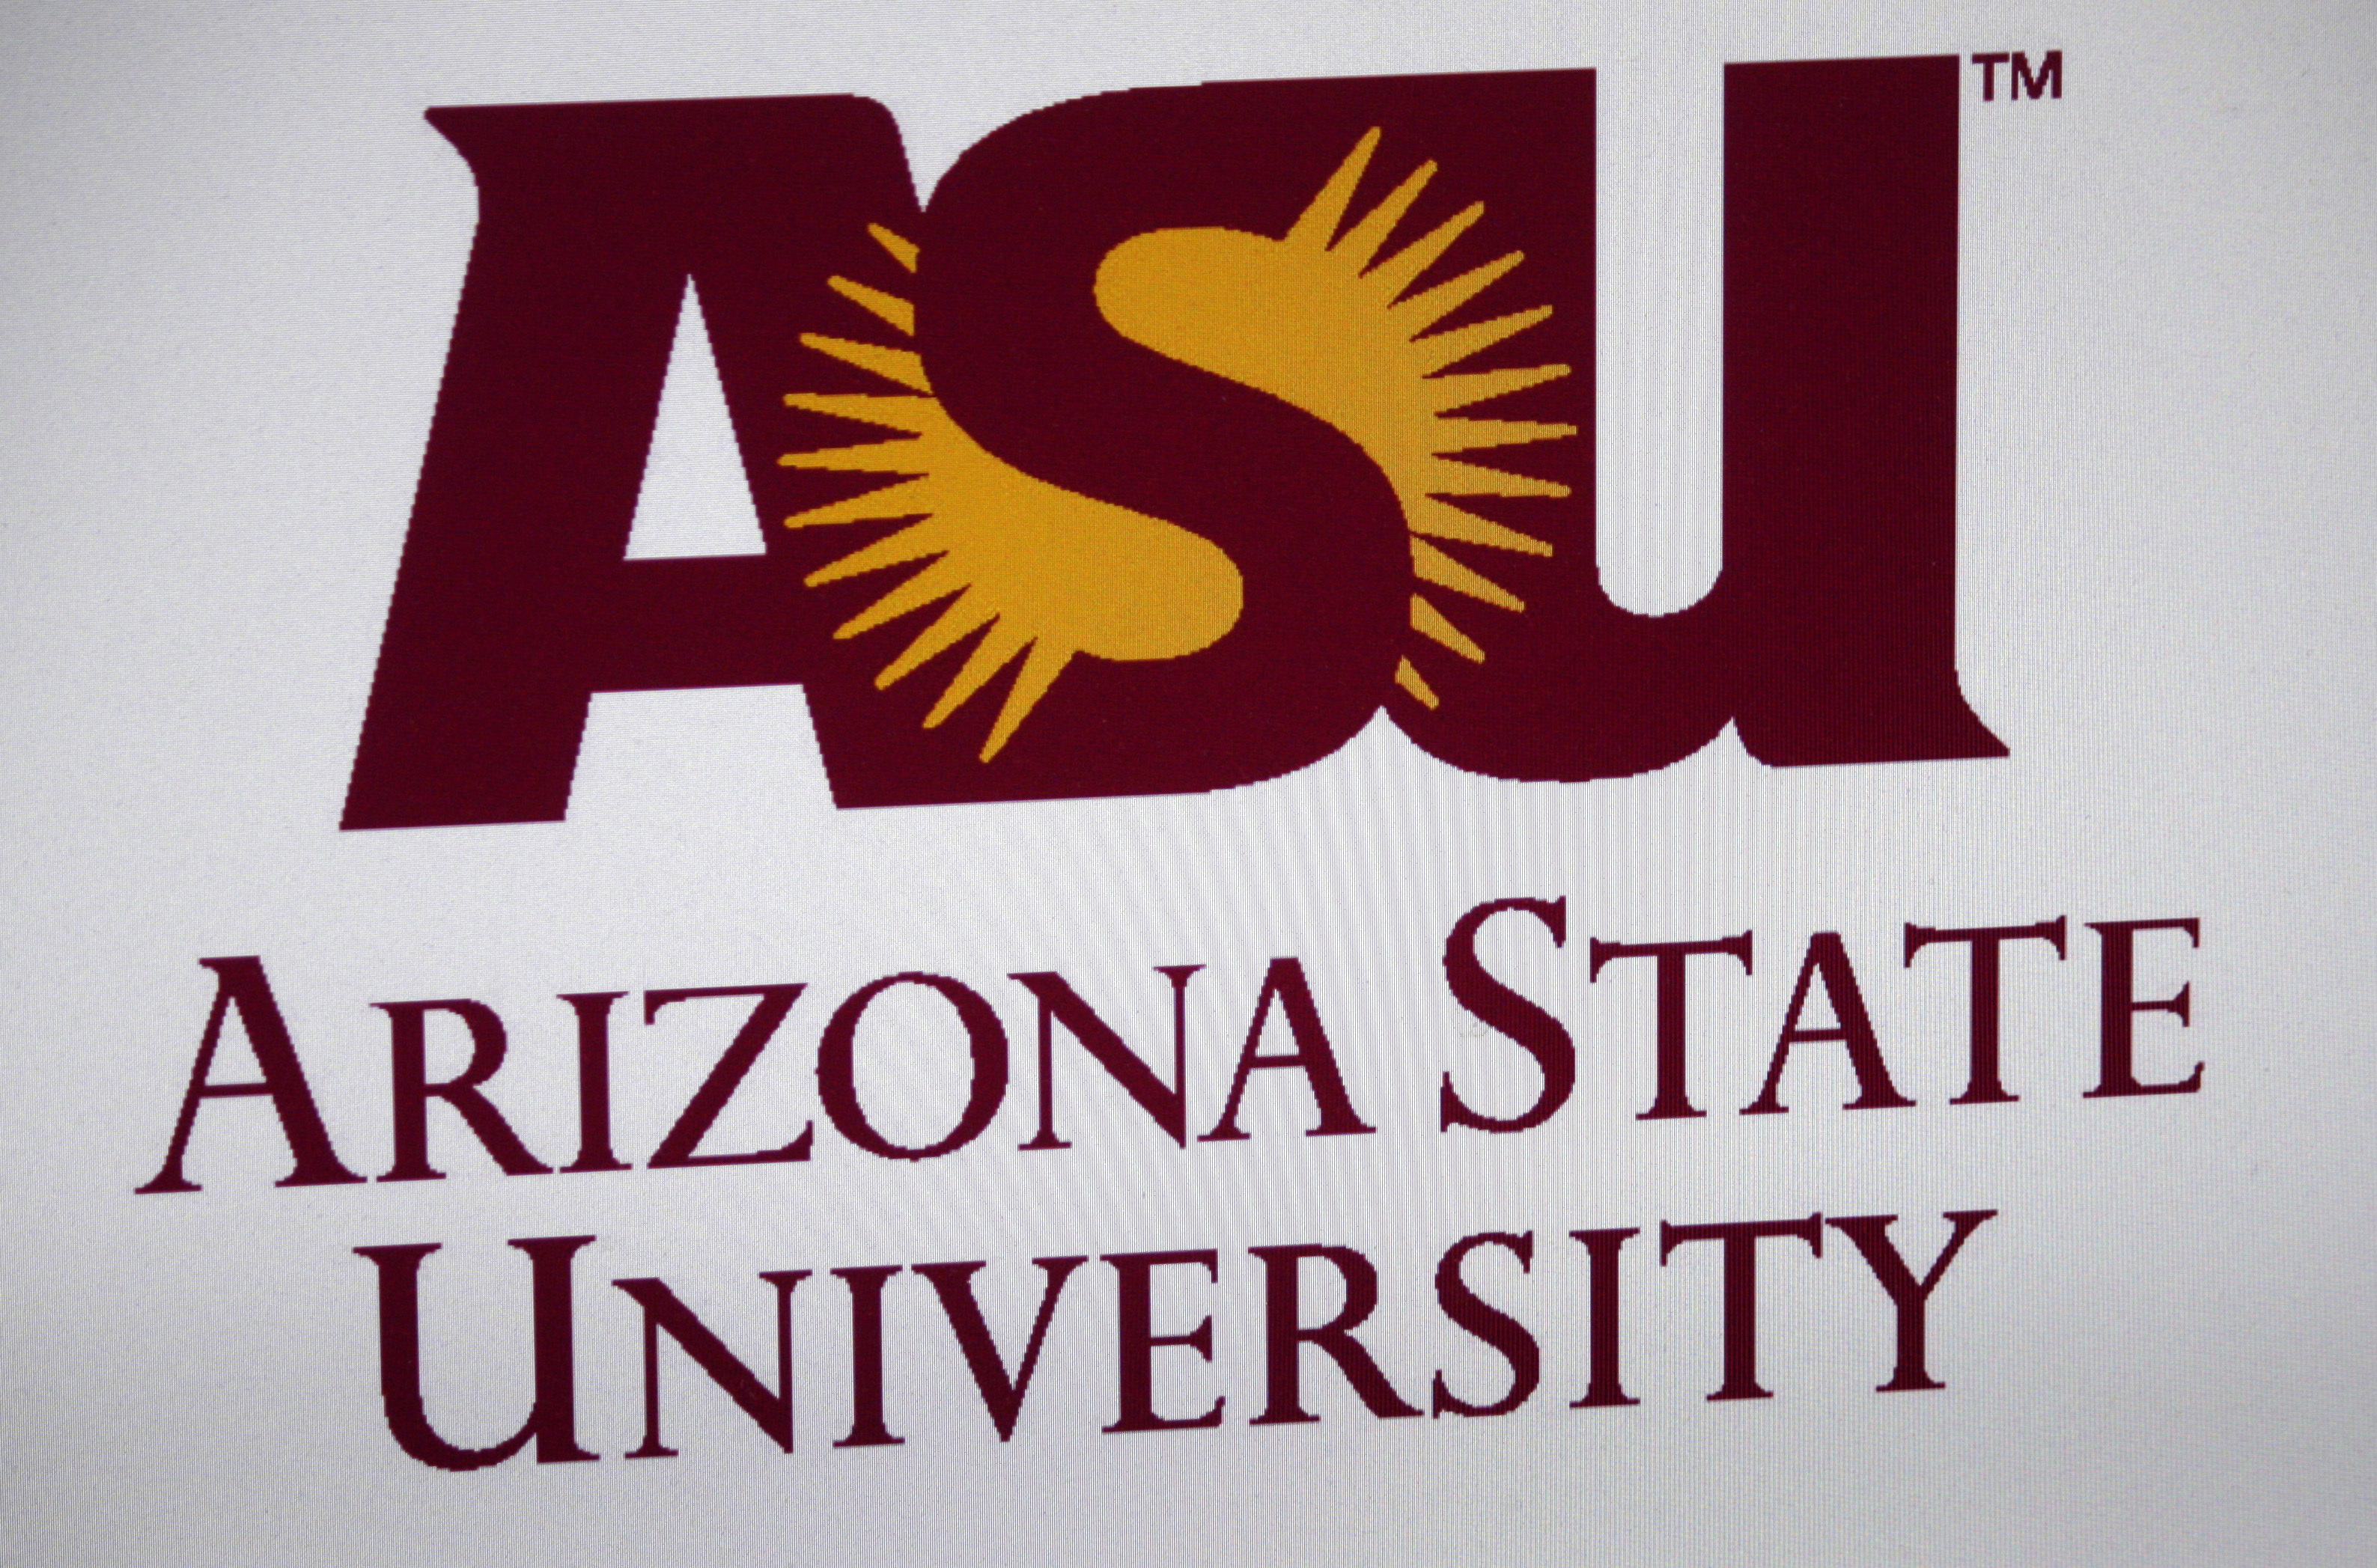 Dude Threatens To Shoot Up ASU Girls And Frat Guys For Rejecting Him